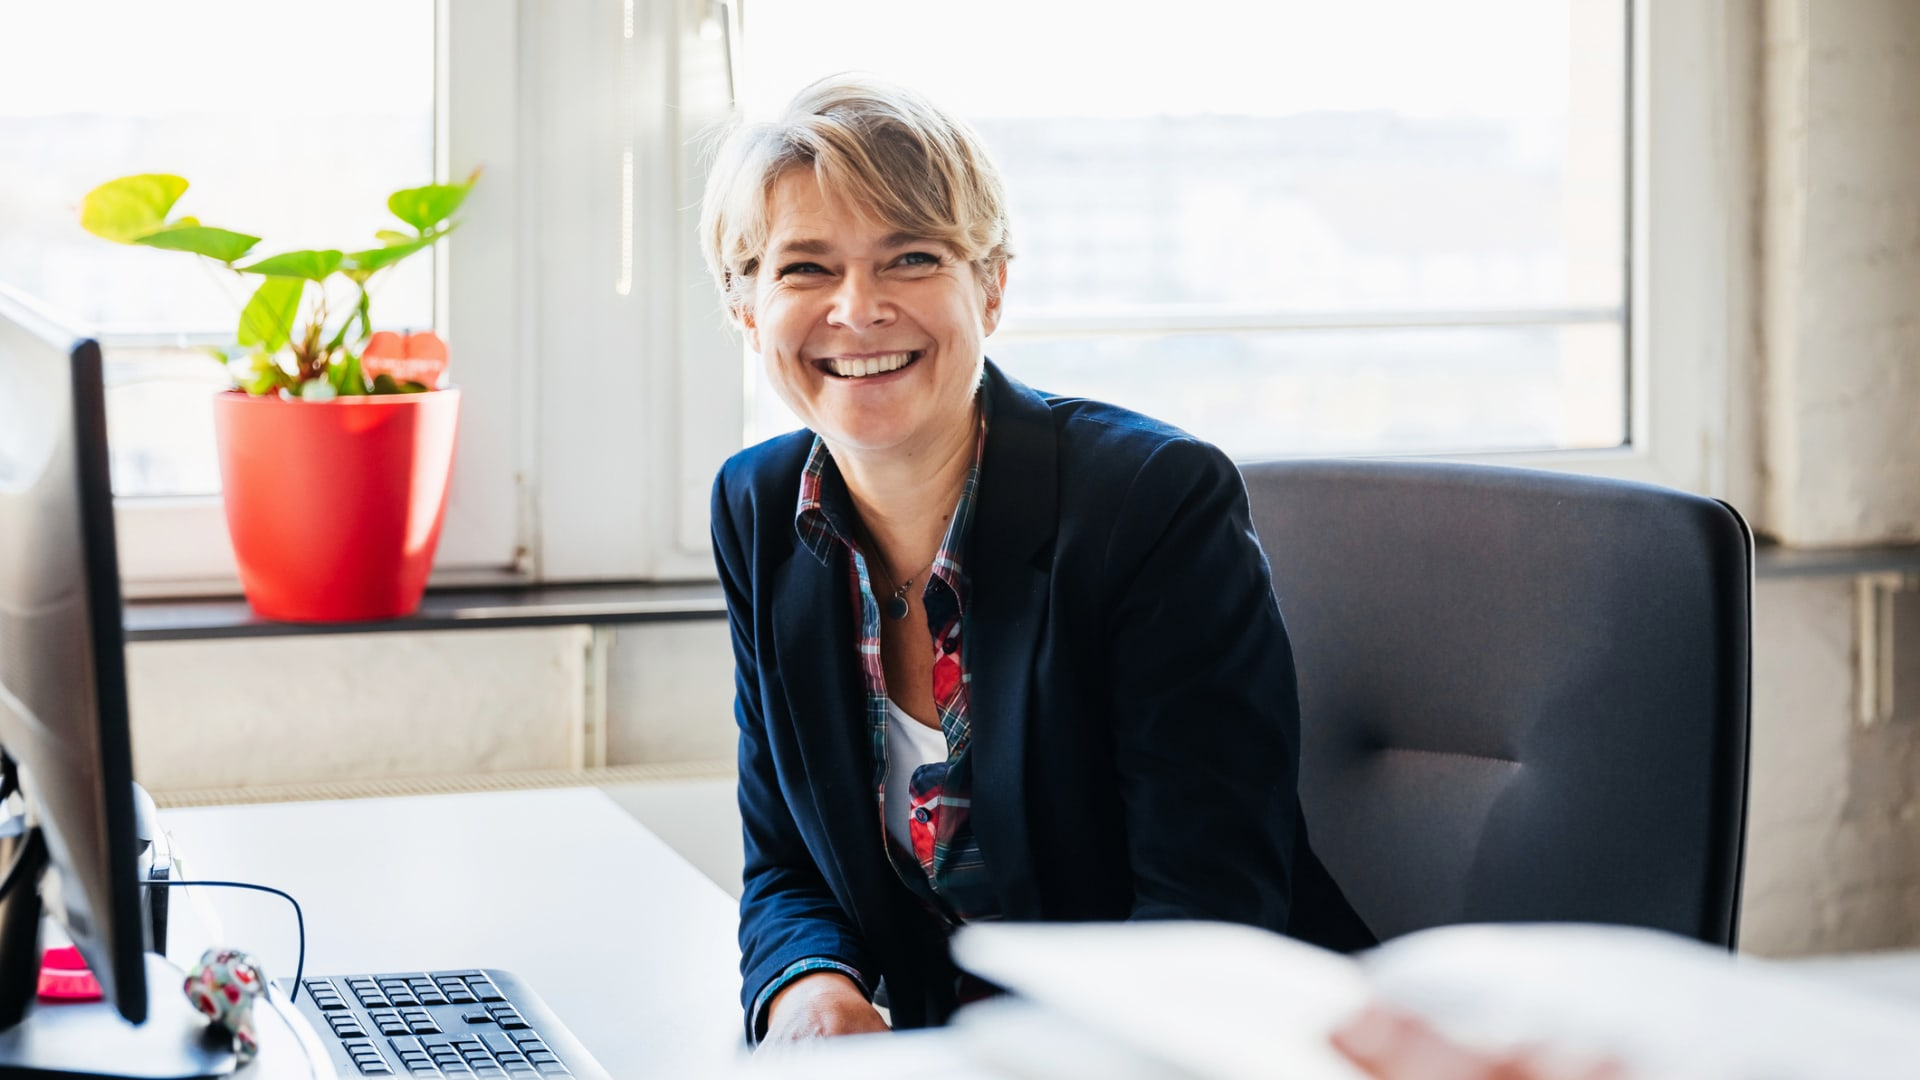 How to Be a Better Boss According to a Pair of Stanford Biz School Professors: Laugh More